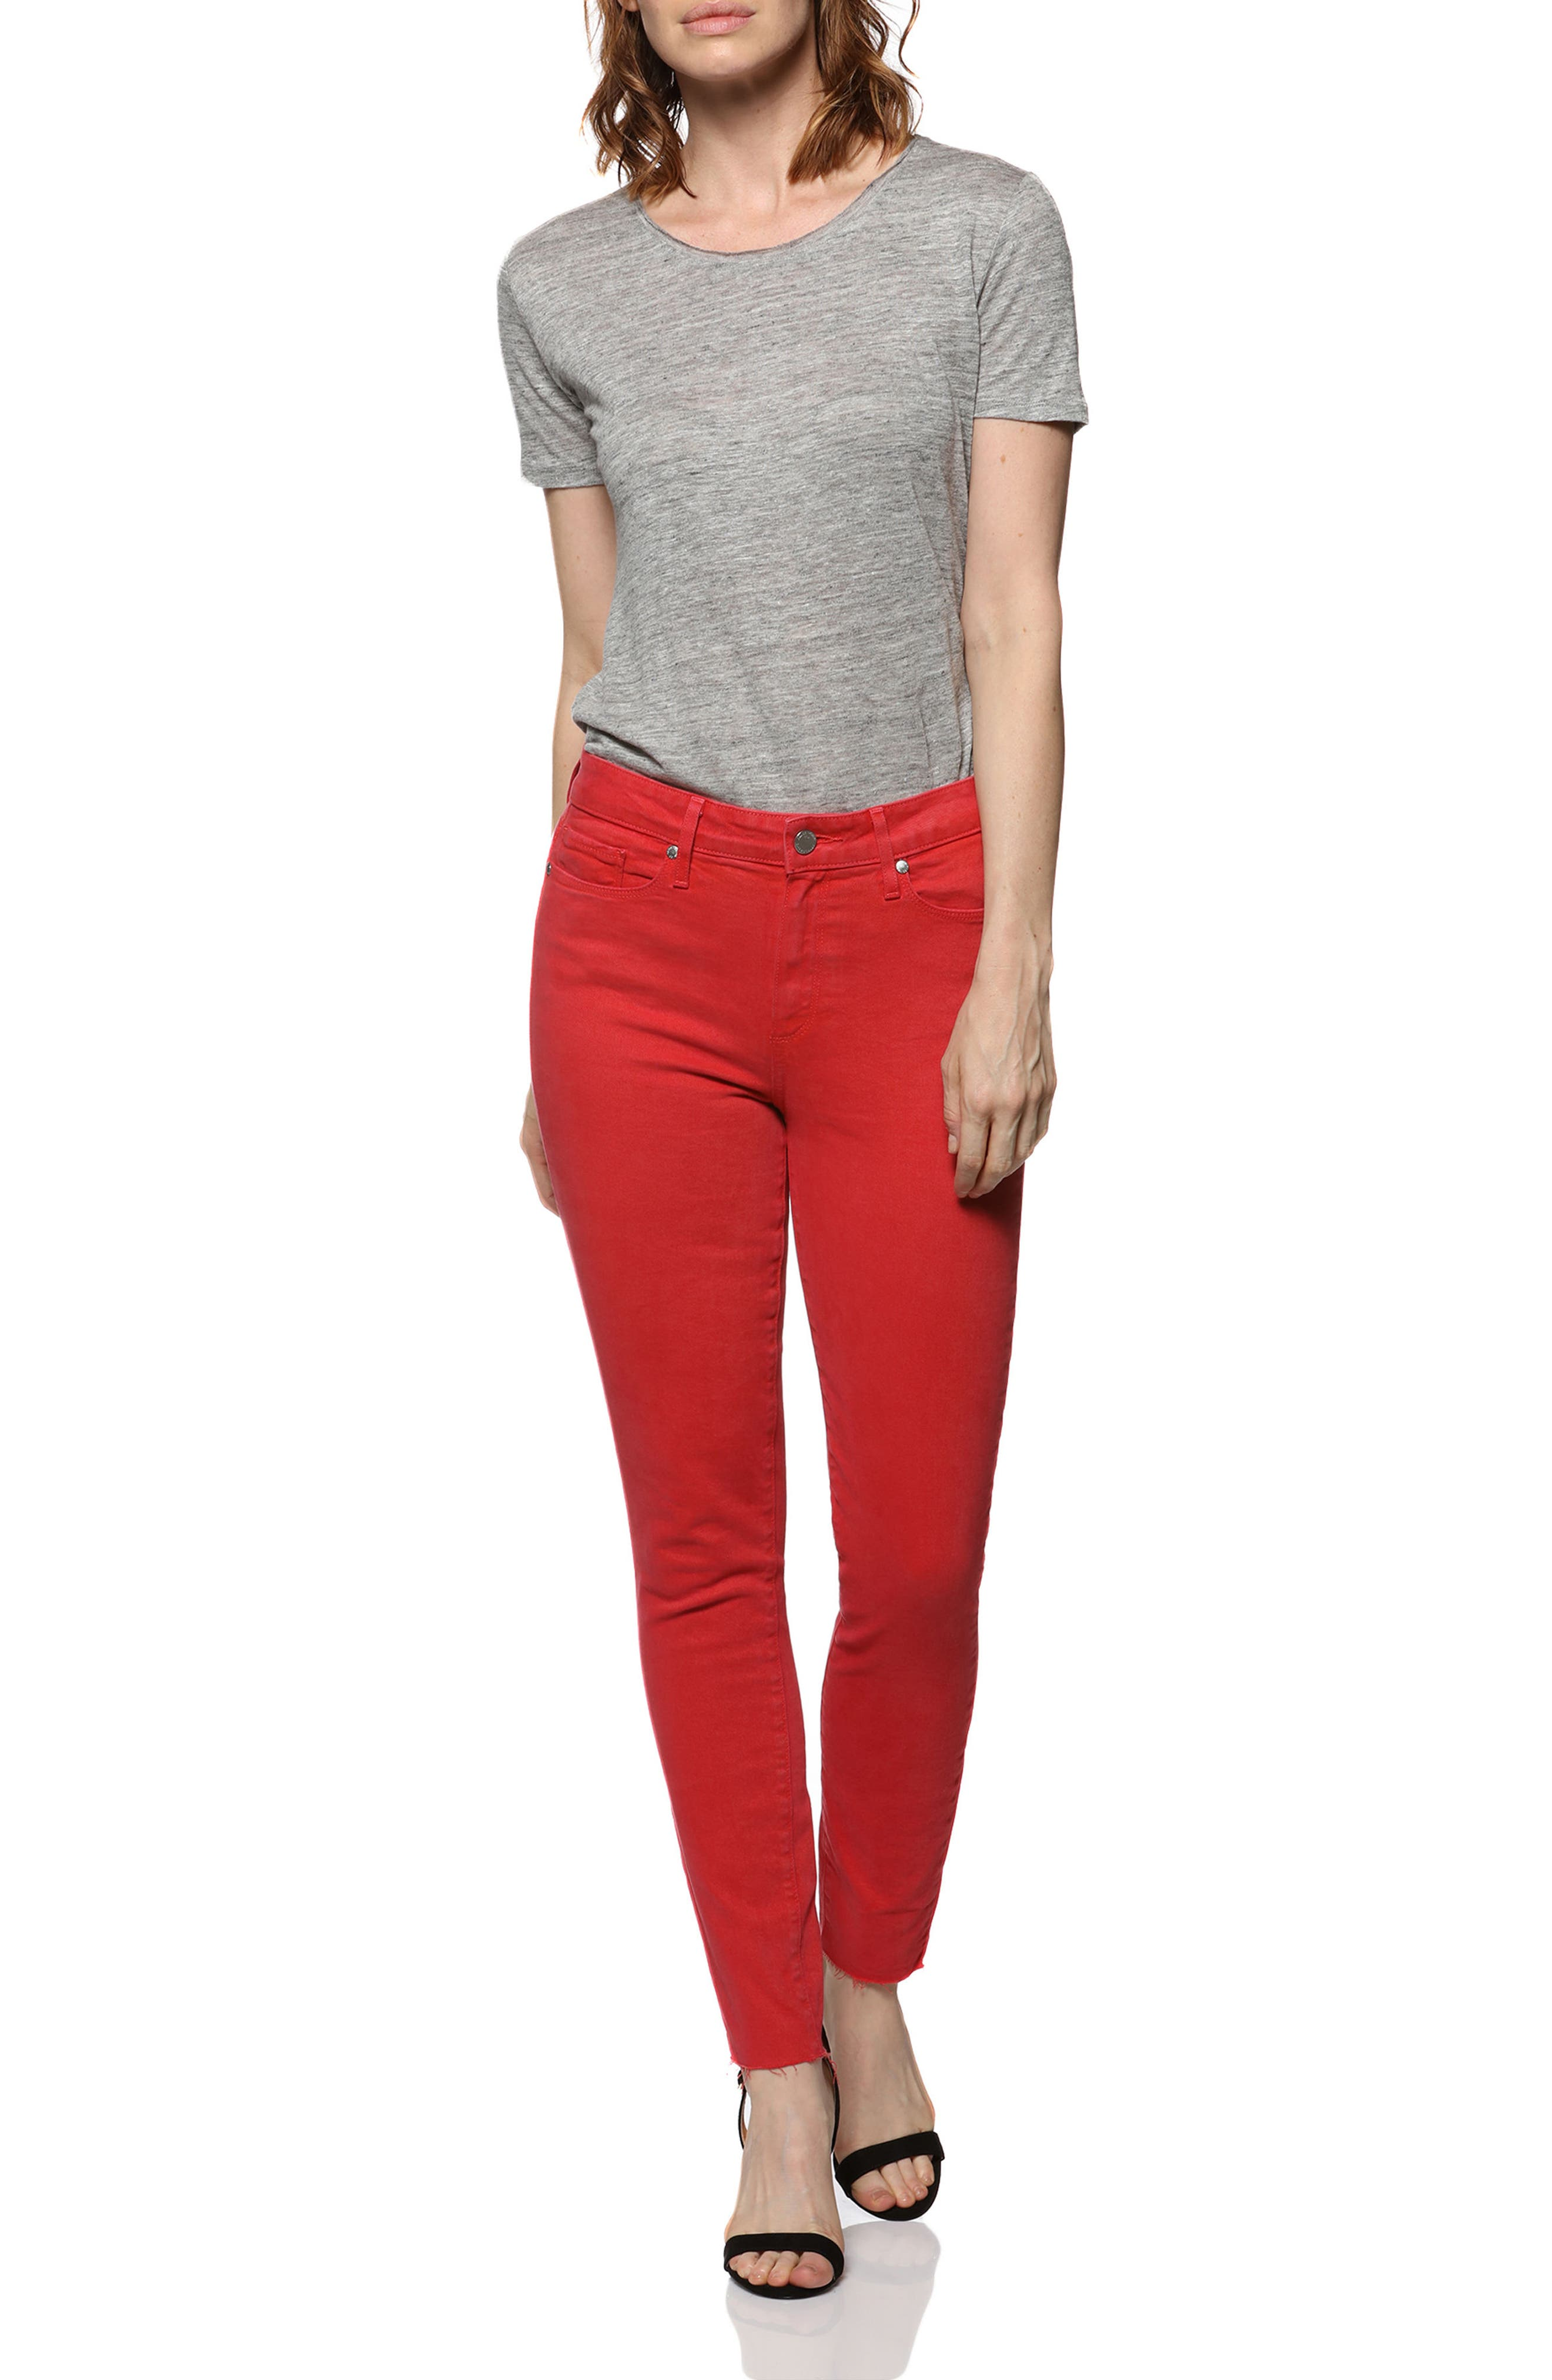 Hoxton High Waist Ankle Skinny Jeans,                             Alternate thumbnail 2, color,                             Vintage Cherry Bomb